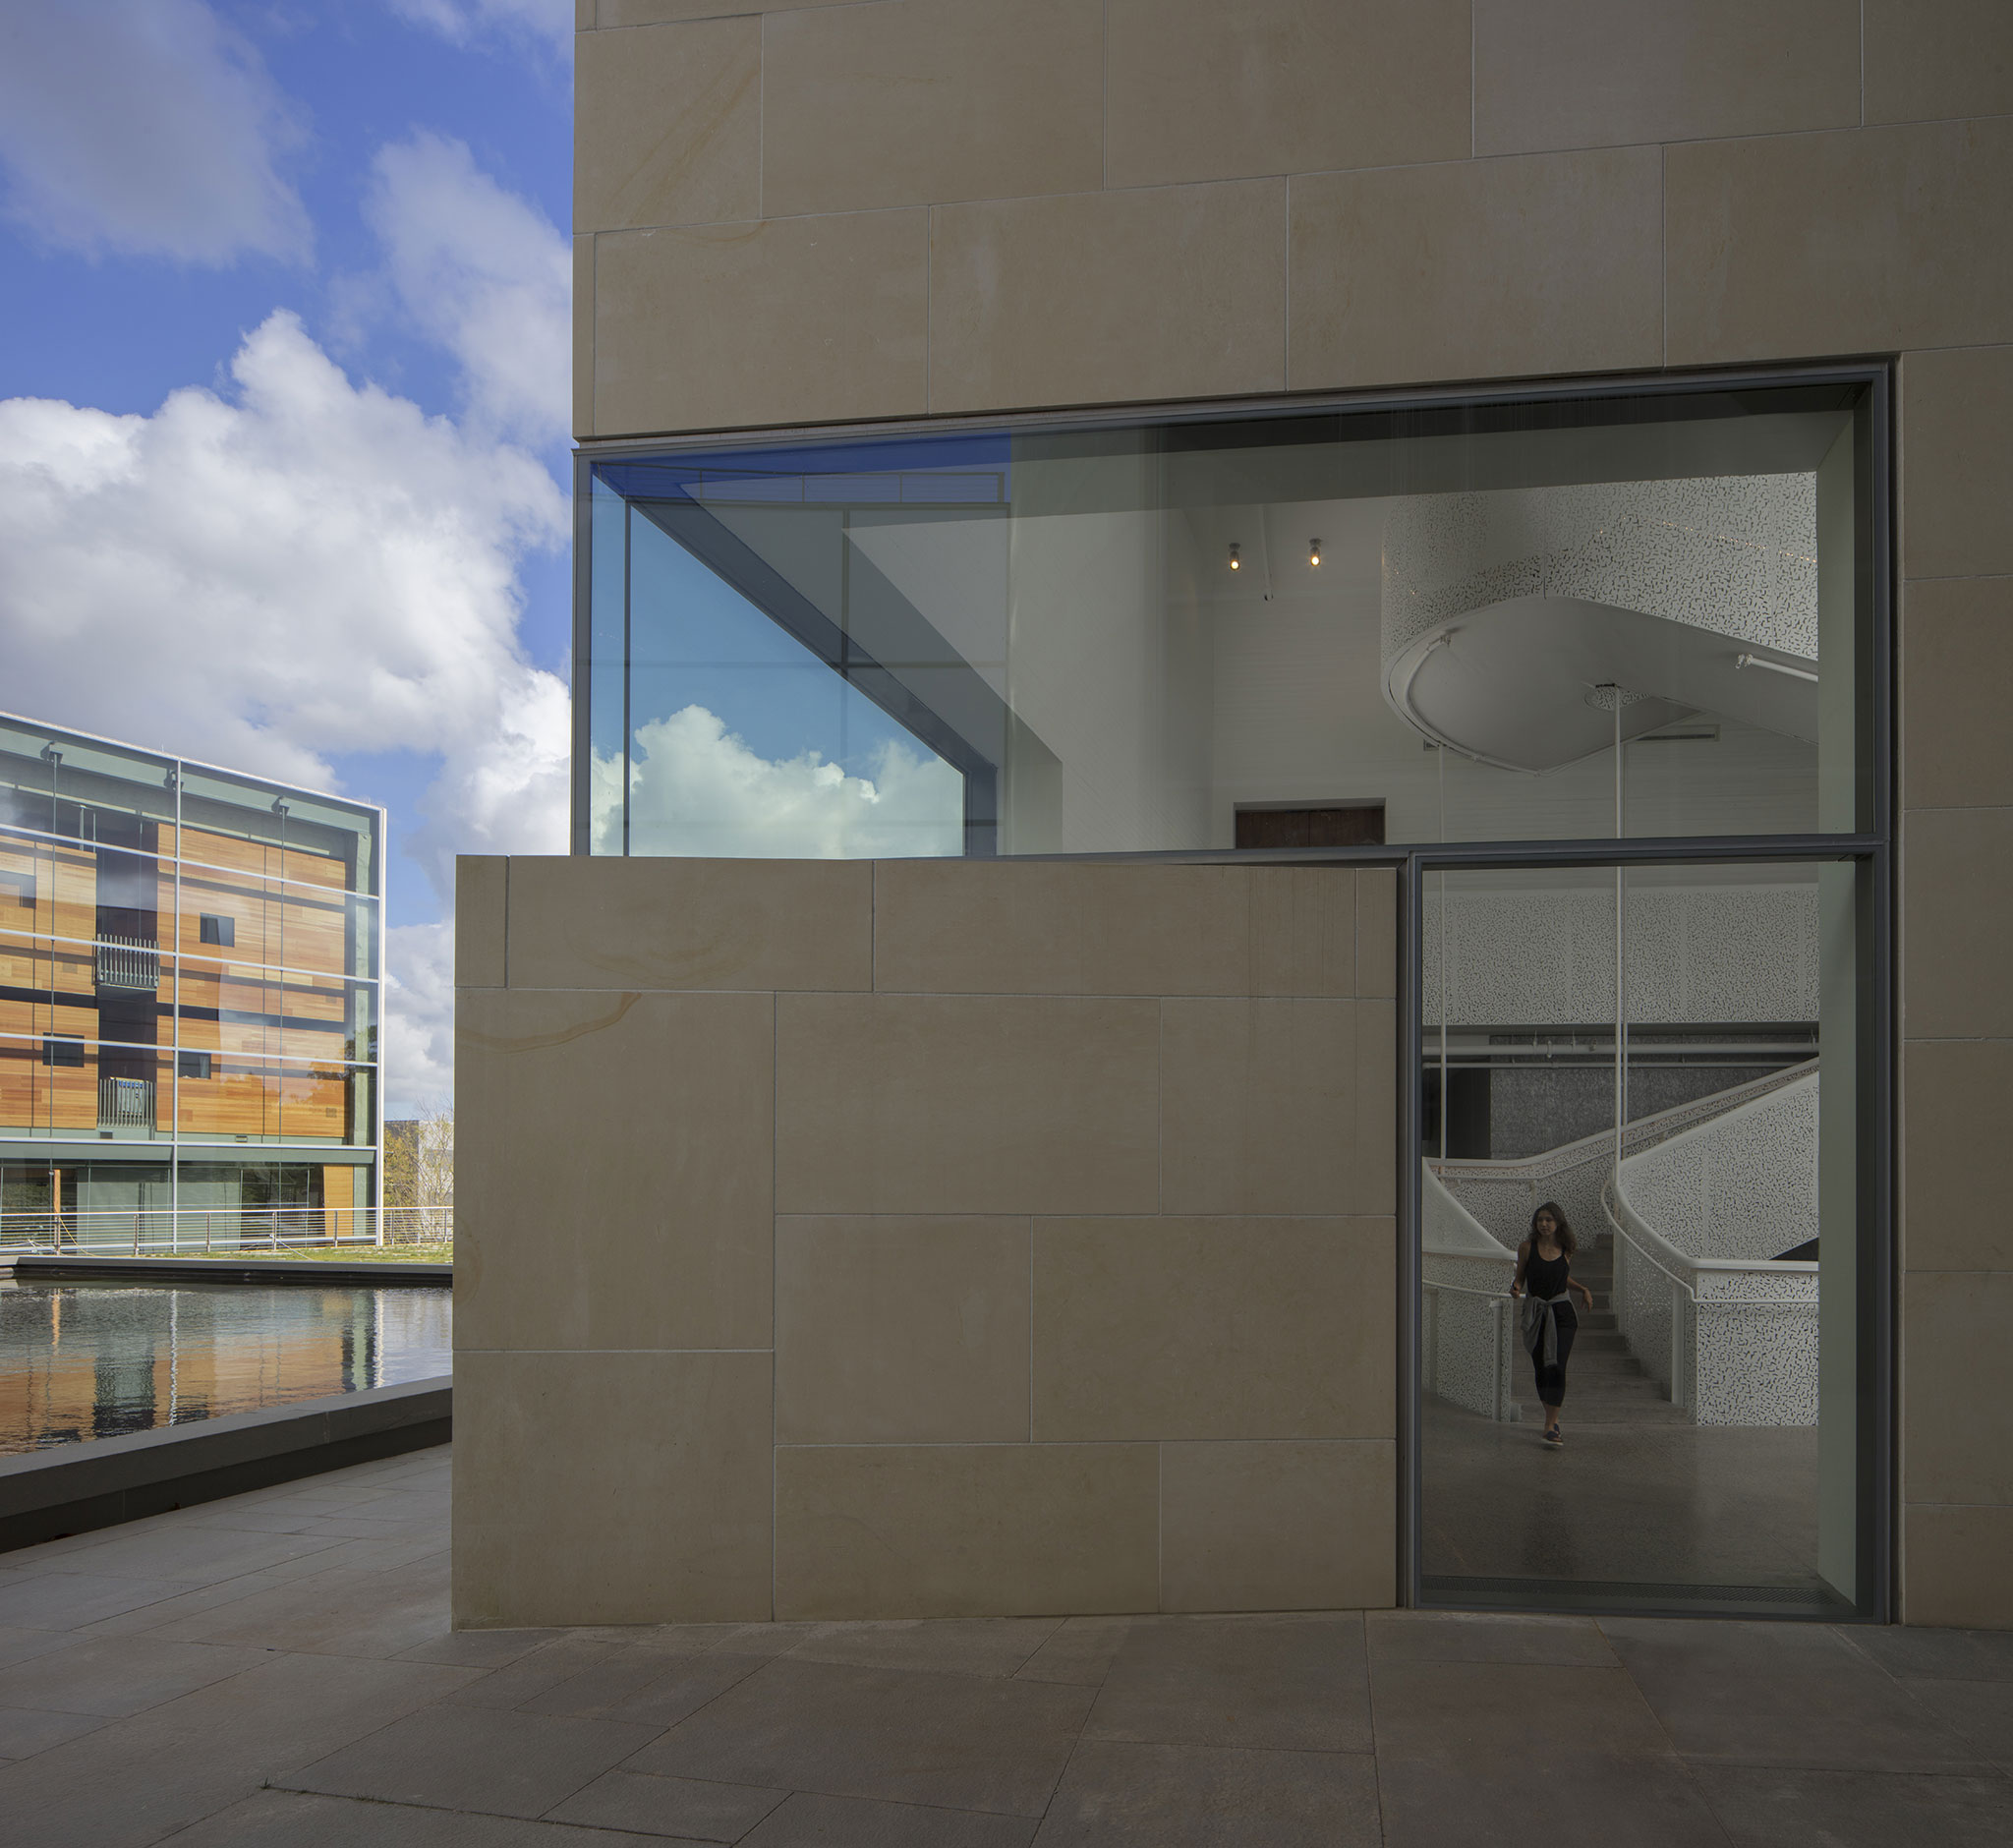 Lewis Arts Complex by Steven Holl Architects and BNIM Architects ...